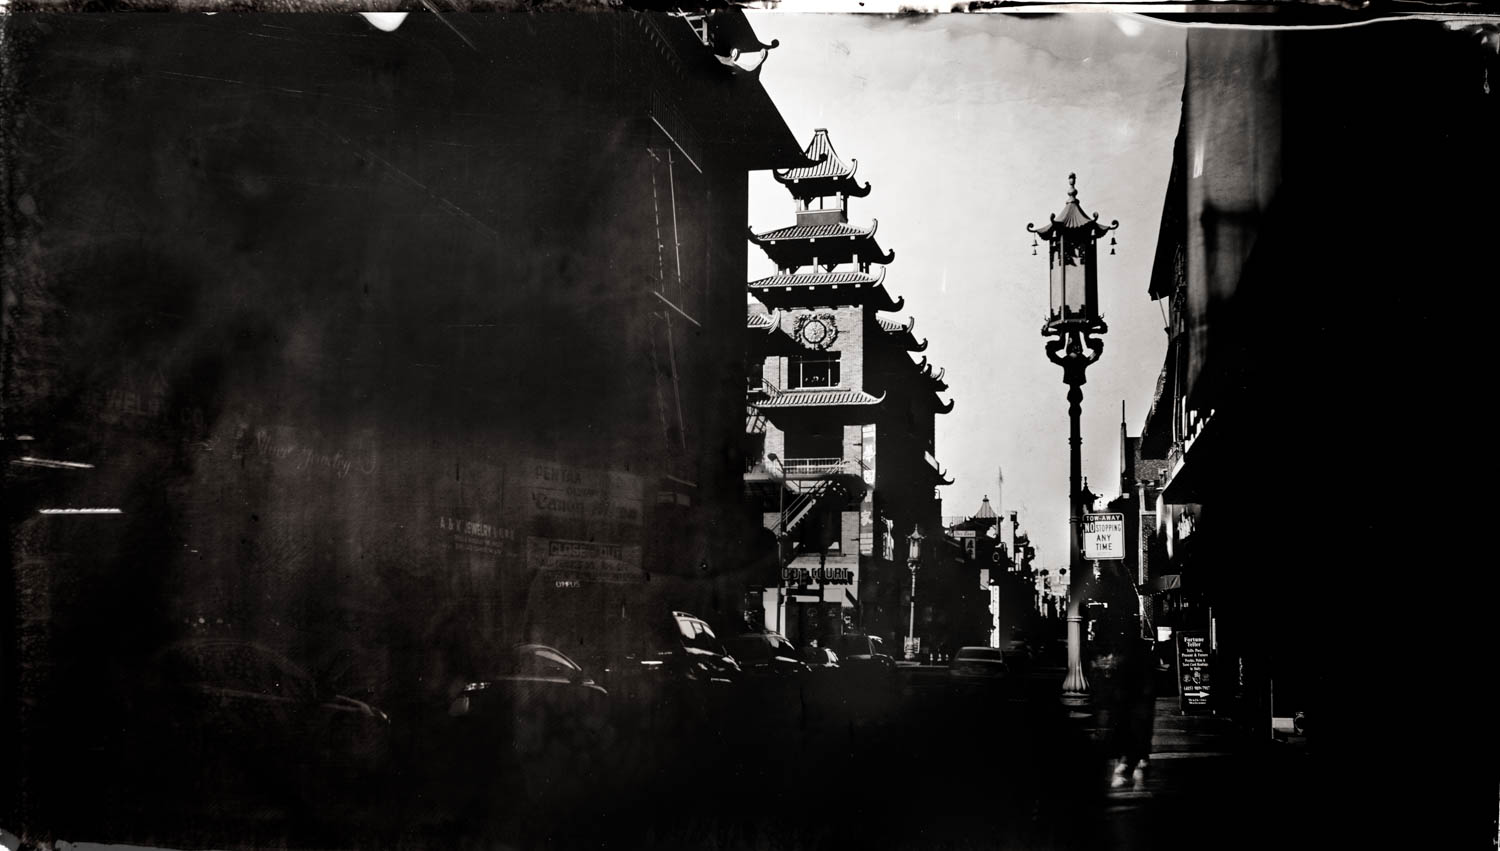 Chinatown, San Francisco - By: Christopher Erin  www.christophererin.com